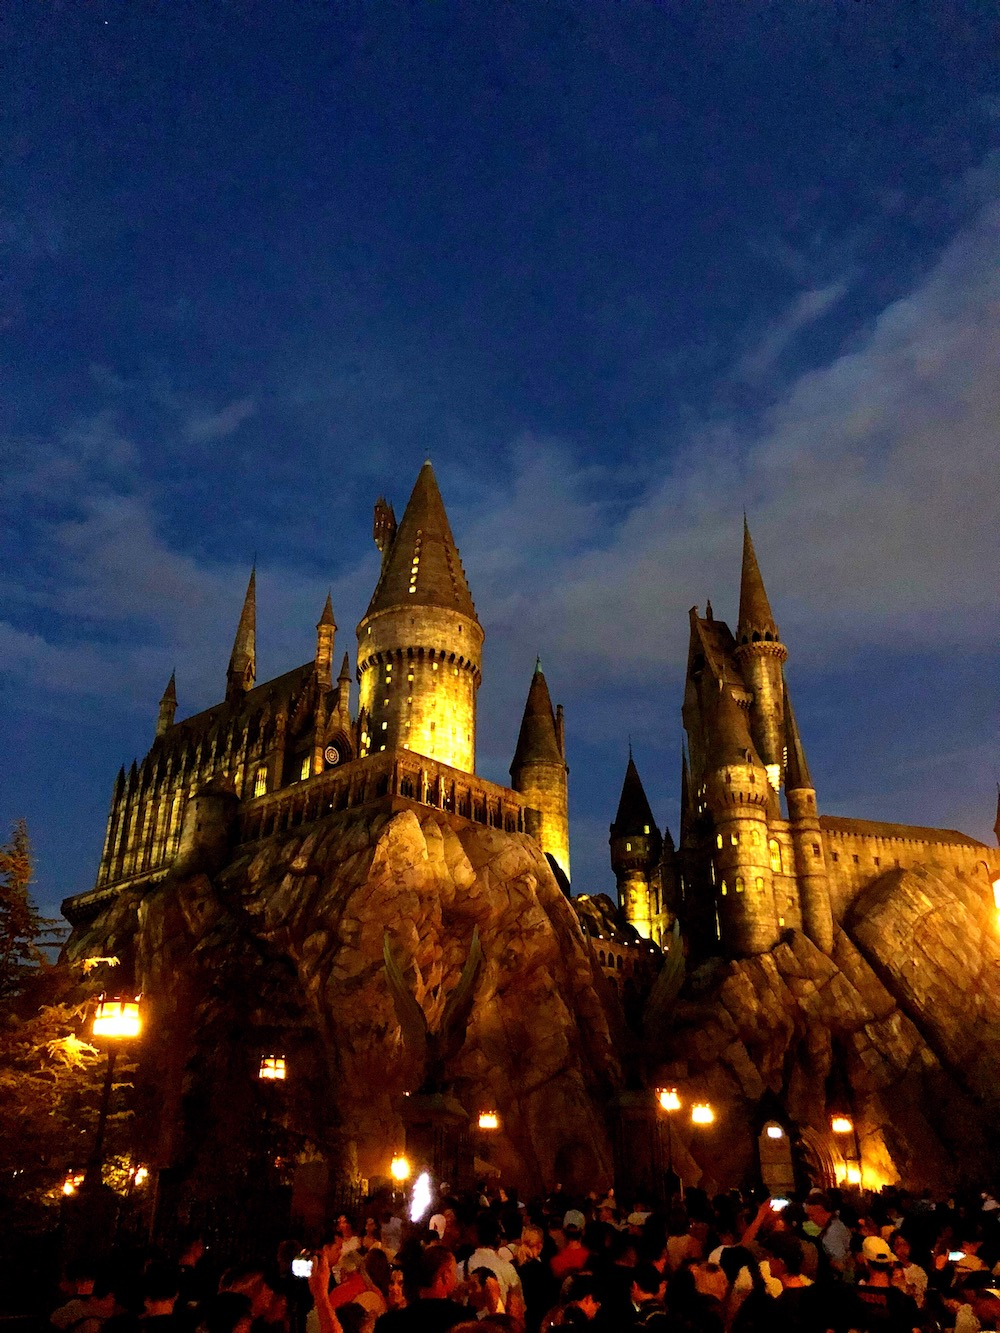 Hogwarts castle lit up at night at universal studios Hollywood - livingmividaloca.com